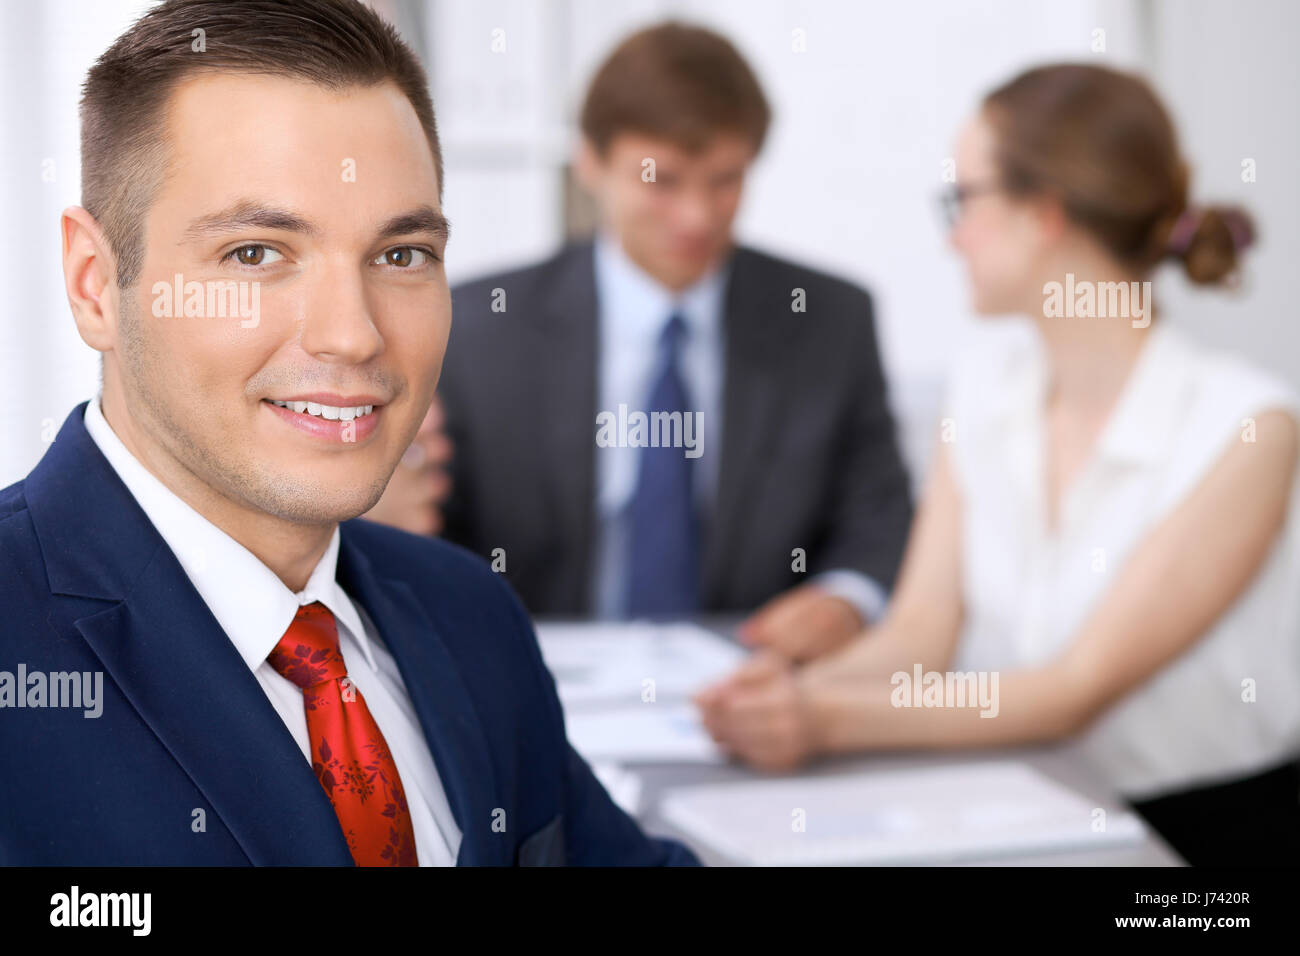 Portrait of cheerful smiling business man  against a group of business people at a meeting. - Stock Image